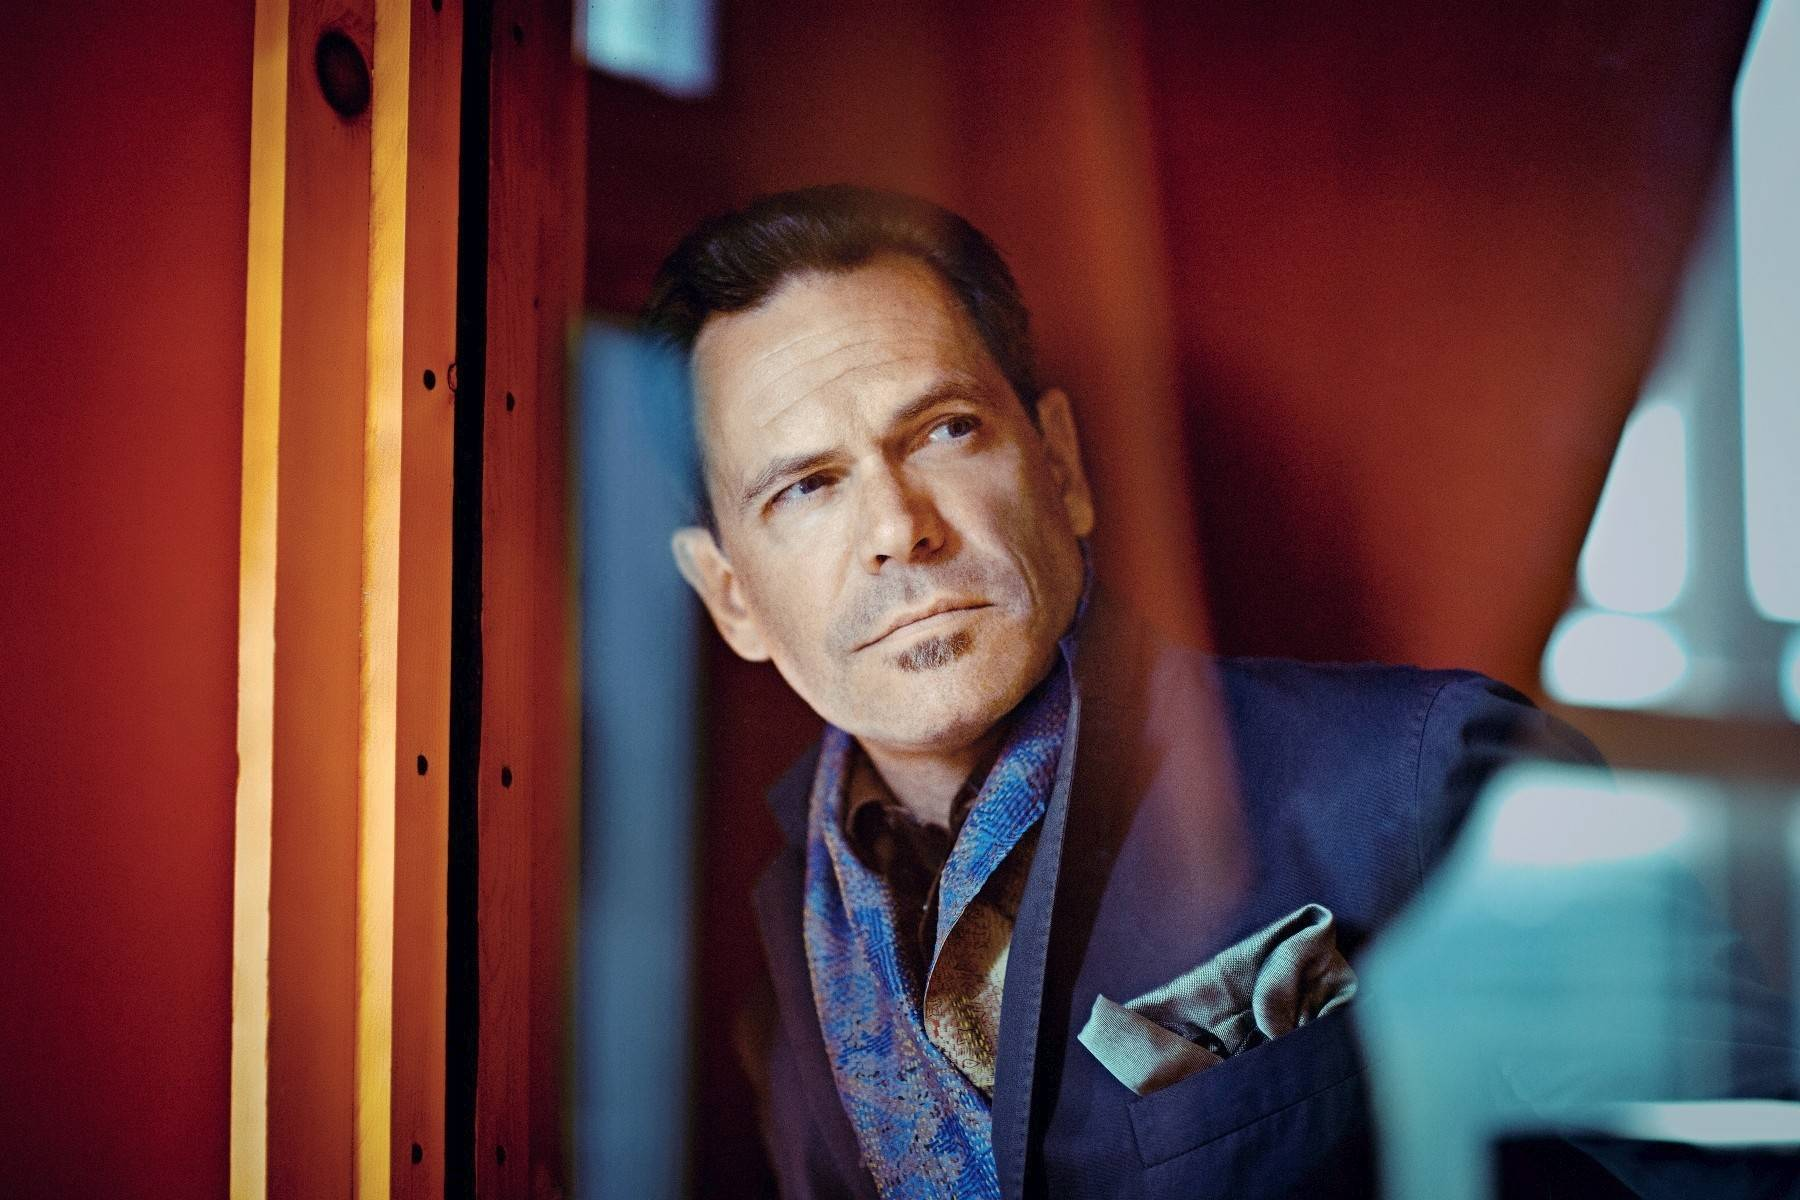 Courtesy of Anna Webber Grammy Award-winner Kurt Elling is set to perform at 4 p.m. Sunday, Feb. 16, at College of DuPage's McAninich Arts Center in Glen Ellyn.